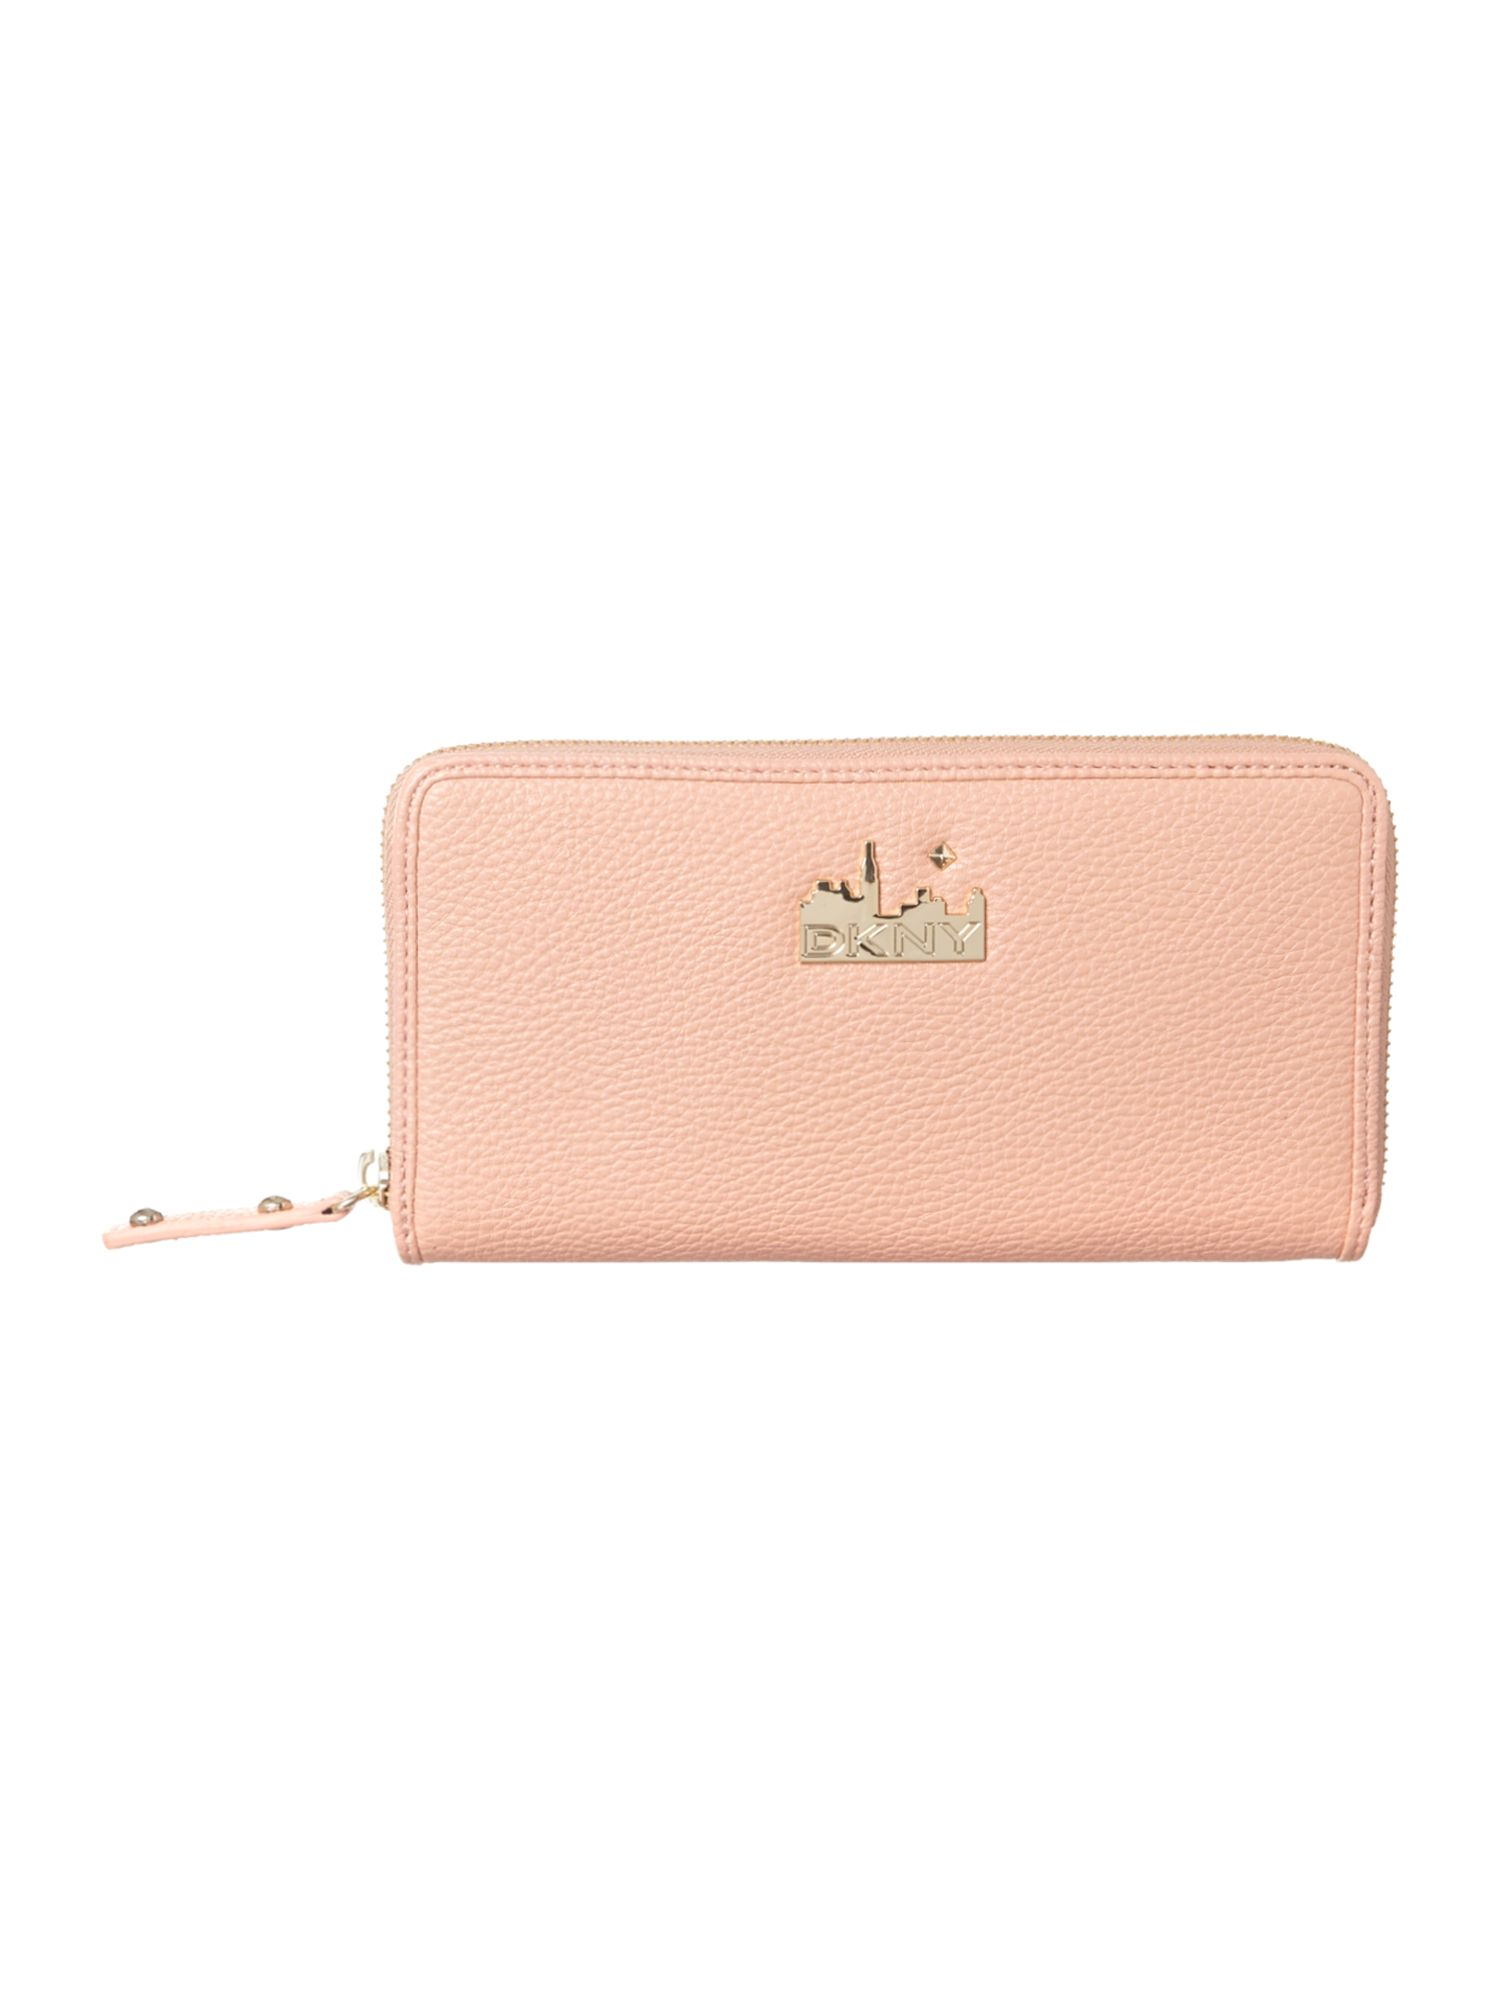 Pink large zip around purse